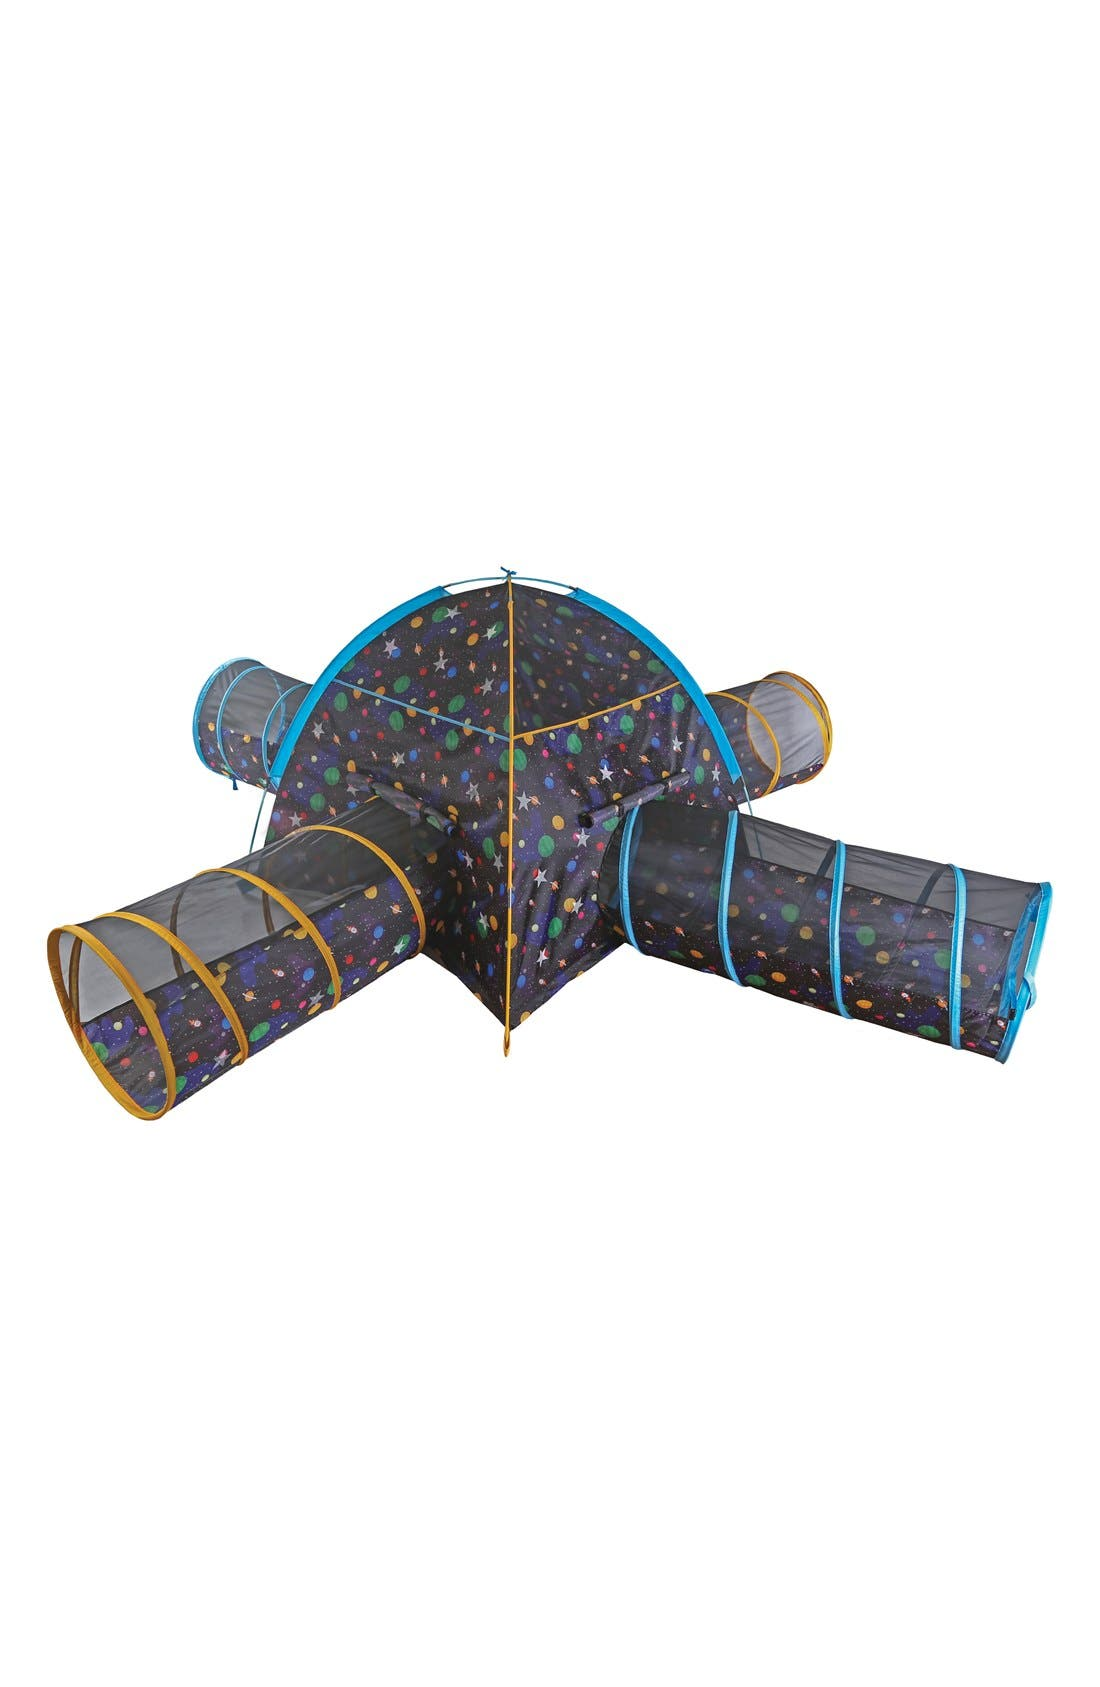 Pacific Play Tents 'Galaxy Junction' Dome Tent with Connecting Tunnels